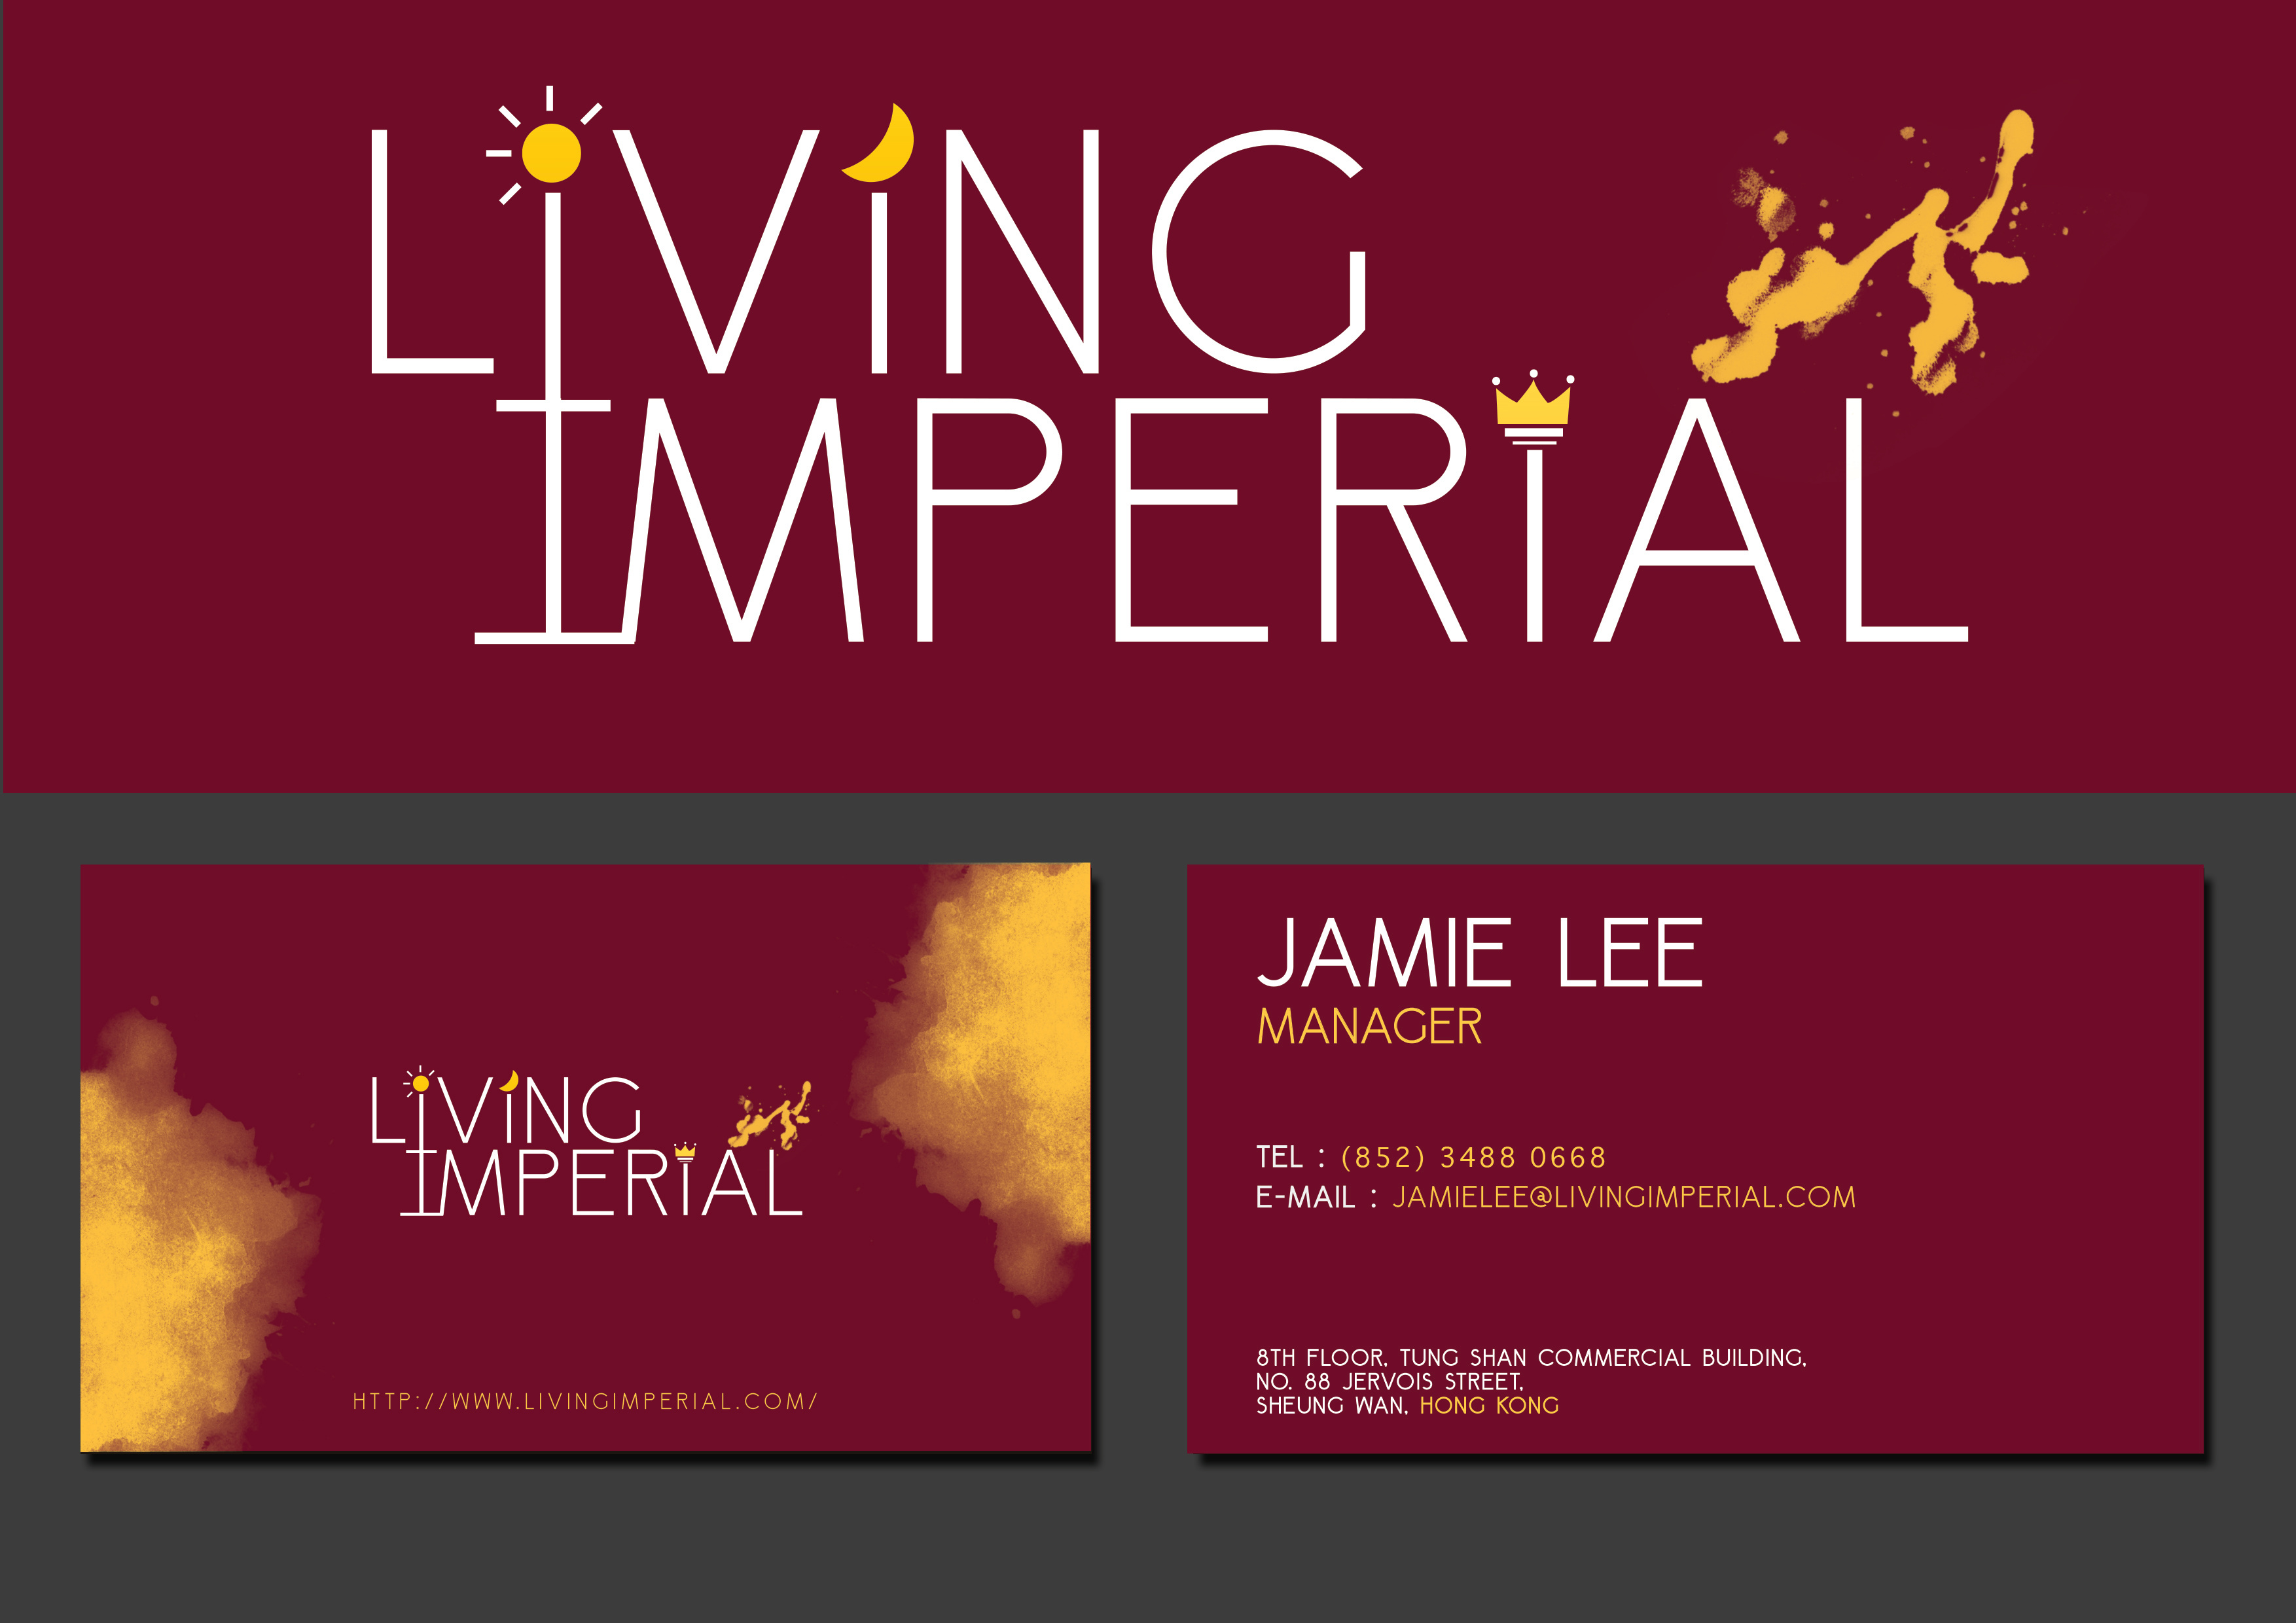 DesignCrowd - Living Imperial